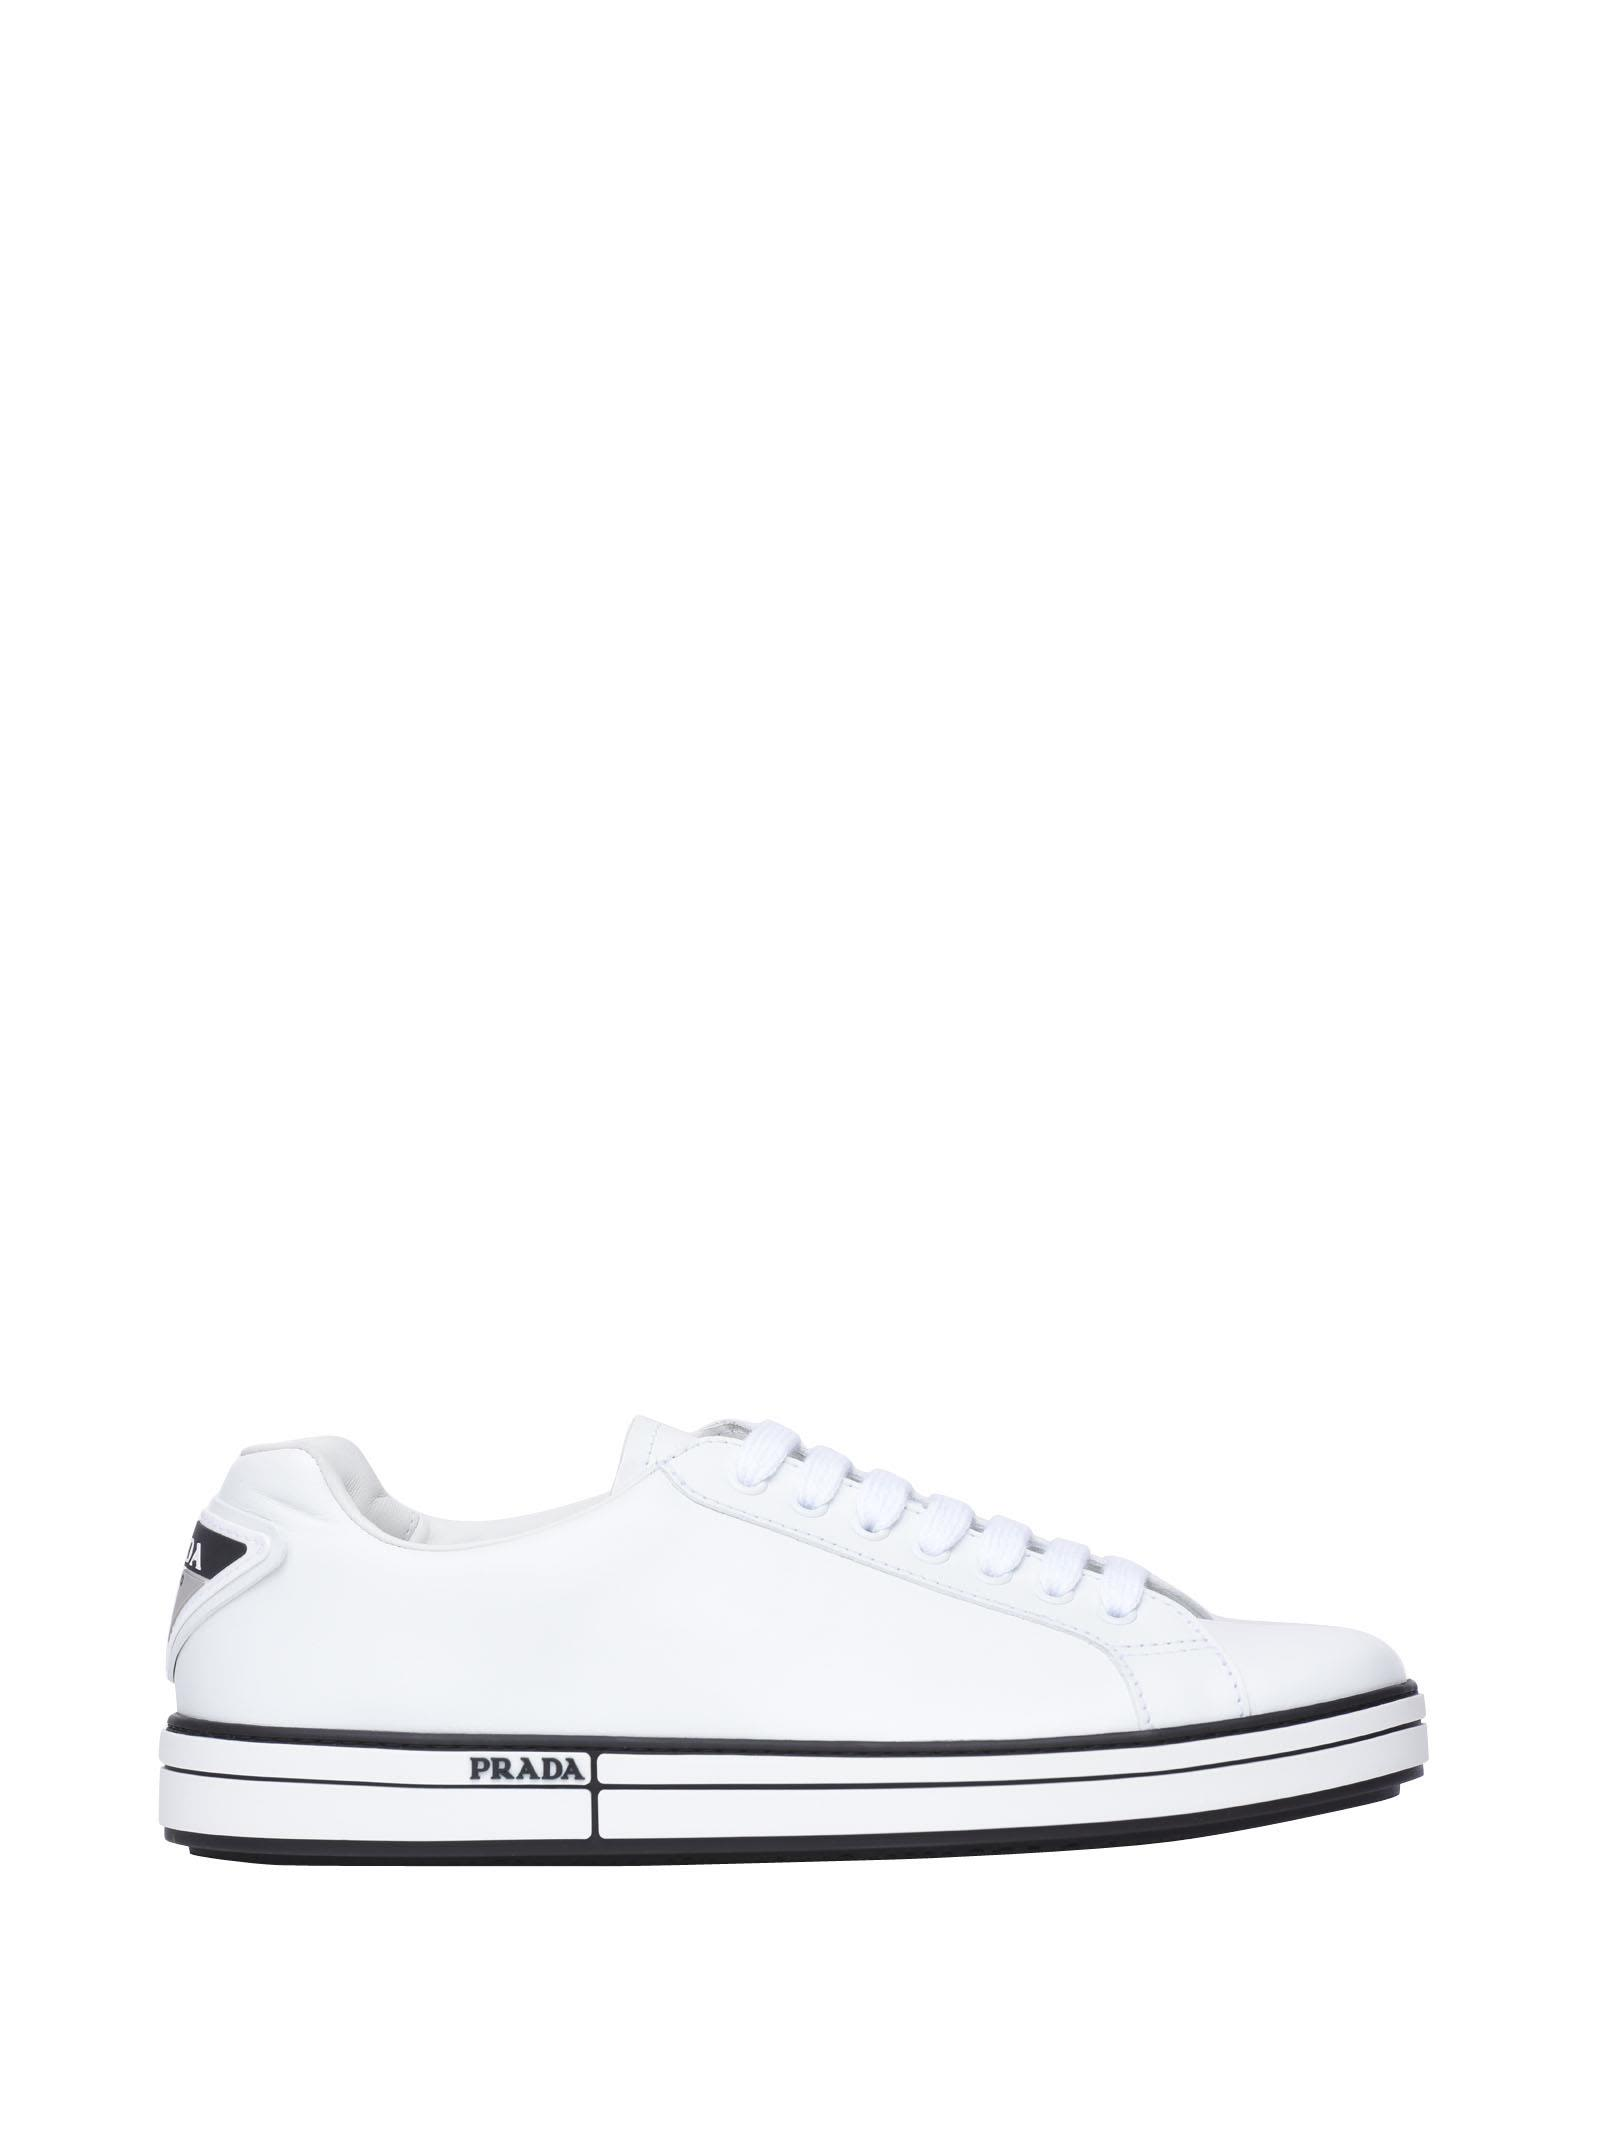 Prada Linea Rossa Leather And Fabric Sneakers